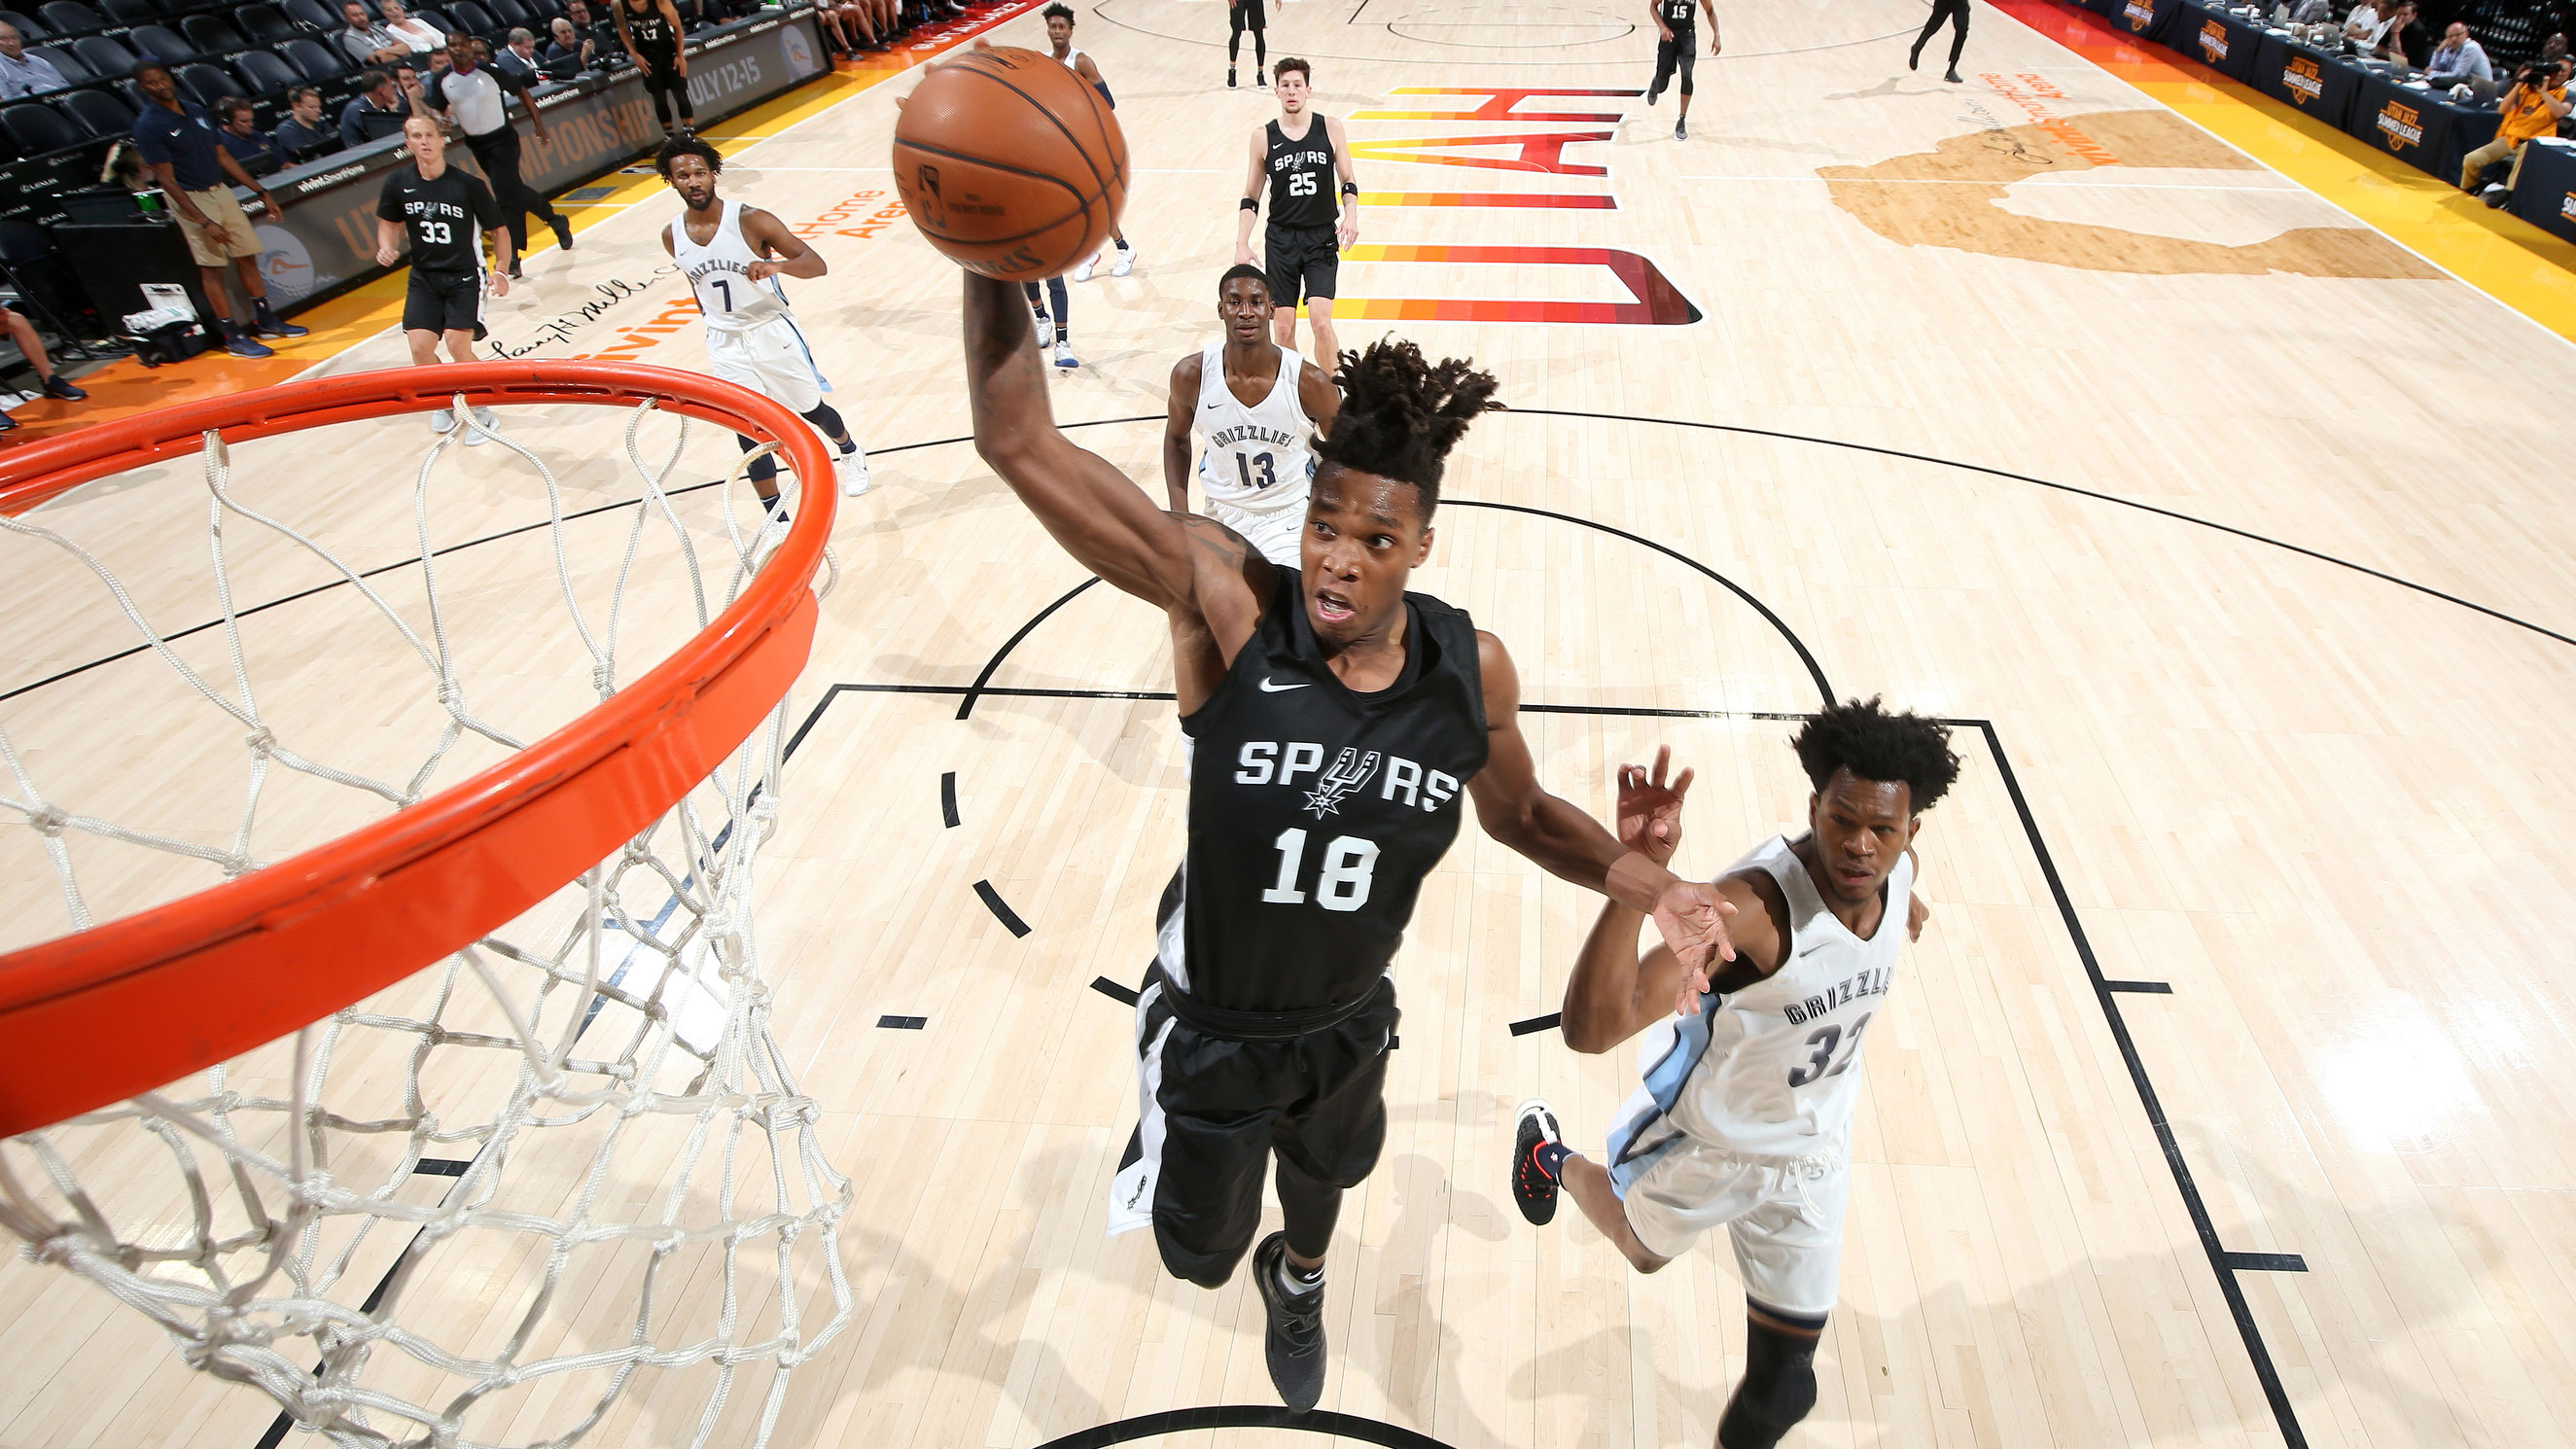 2018 Utah Summer League – Memphis Grizzlies v San Antonio Spurs